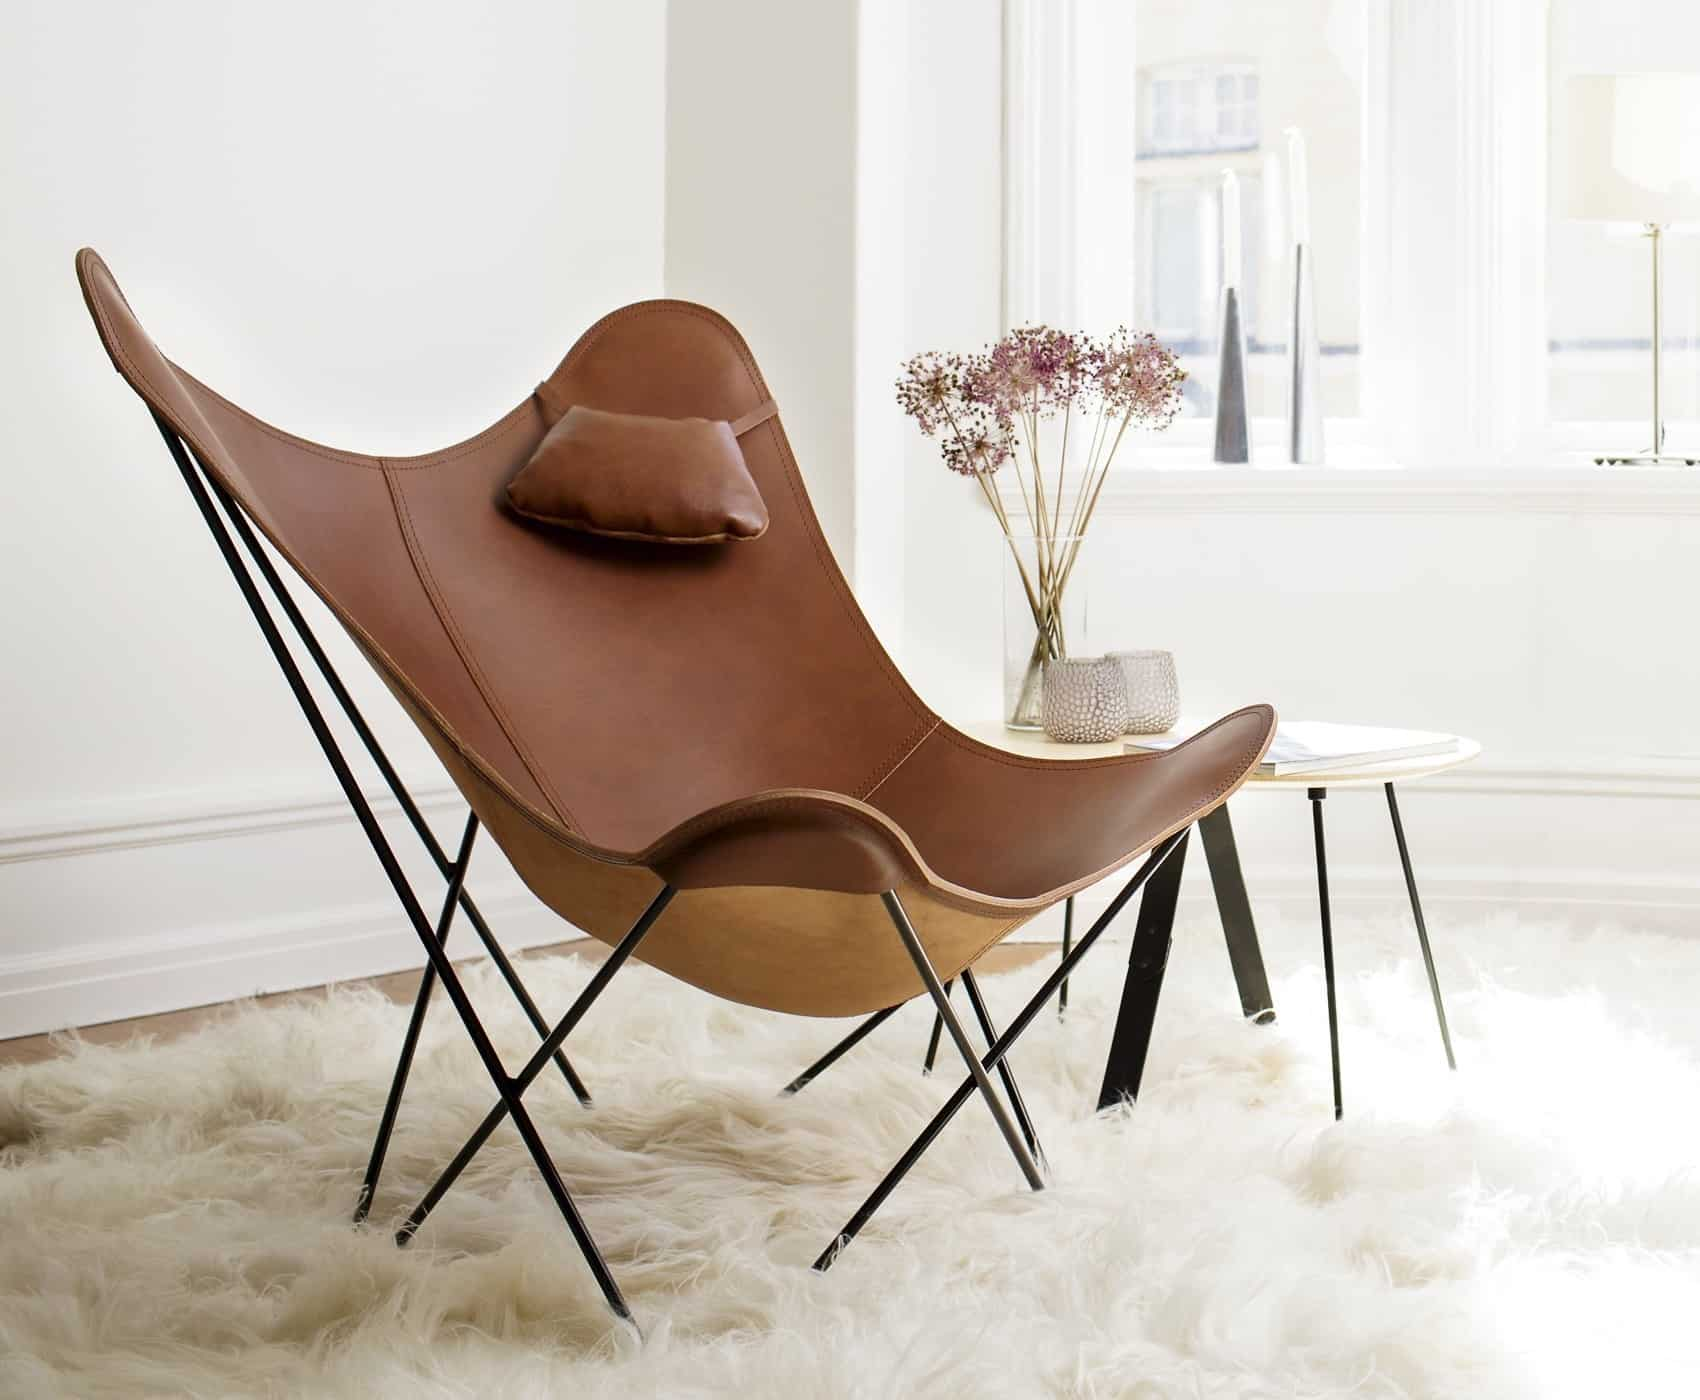 A LEATHER BUTTERFLY CHAIR WITH A PILLOW